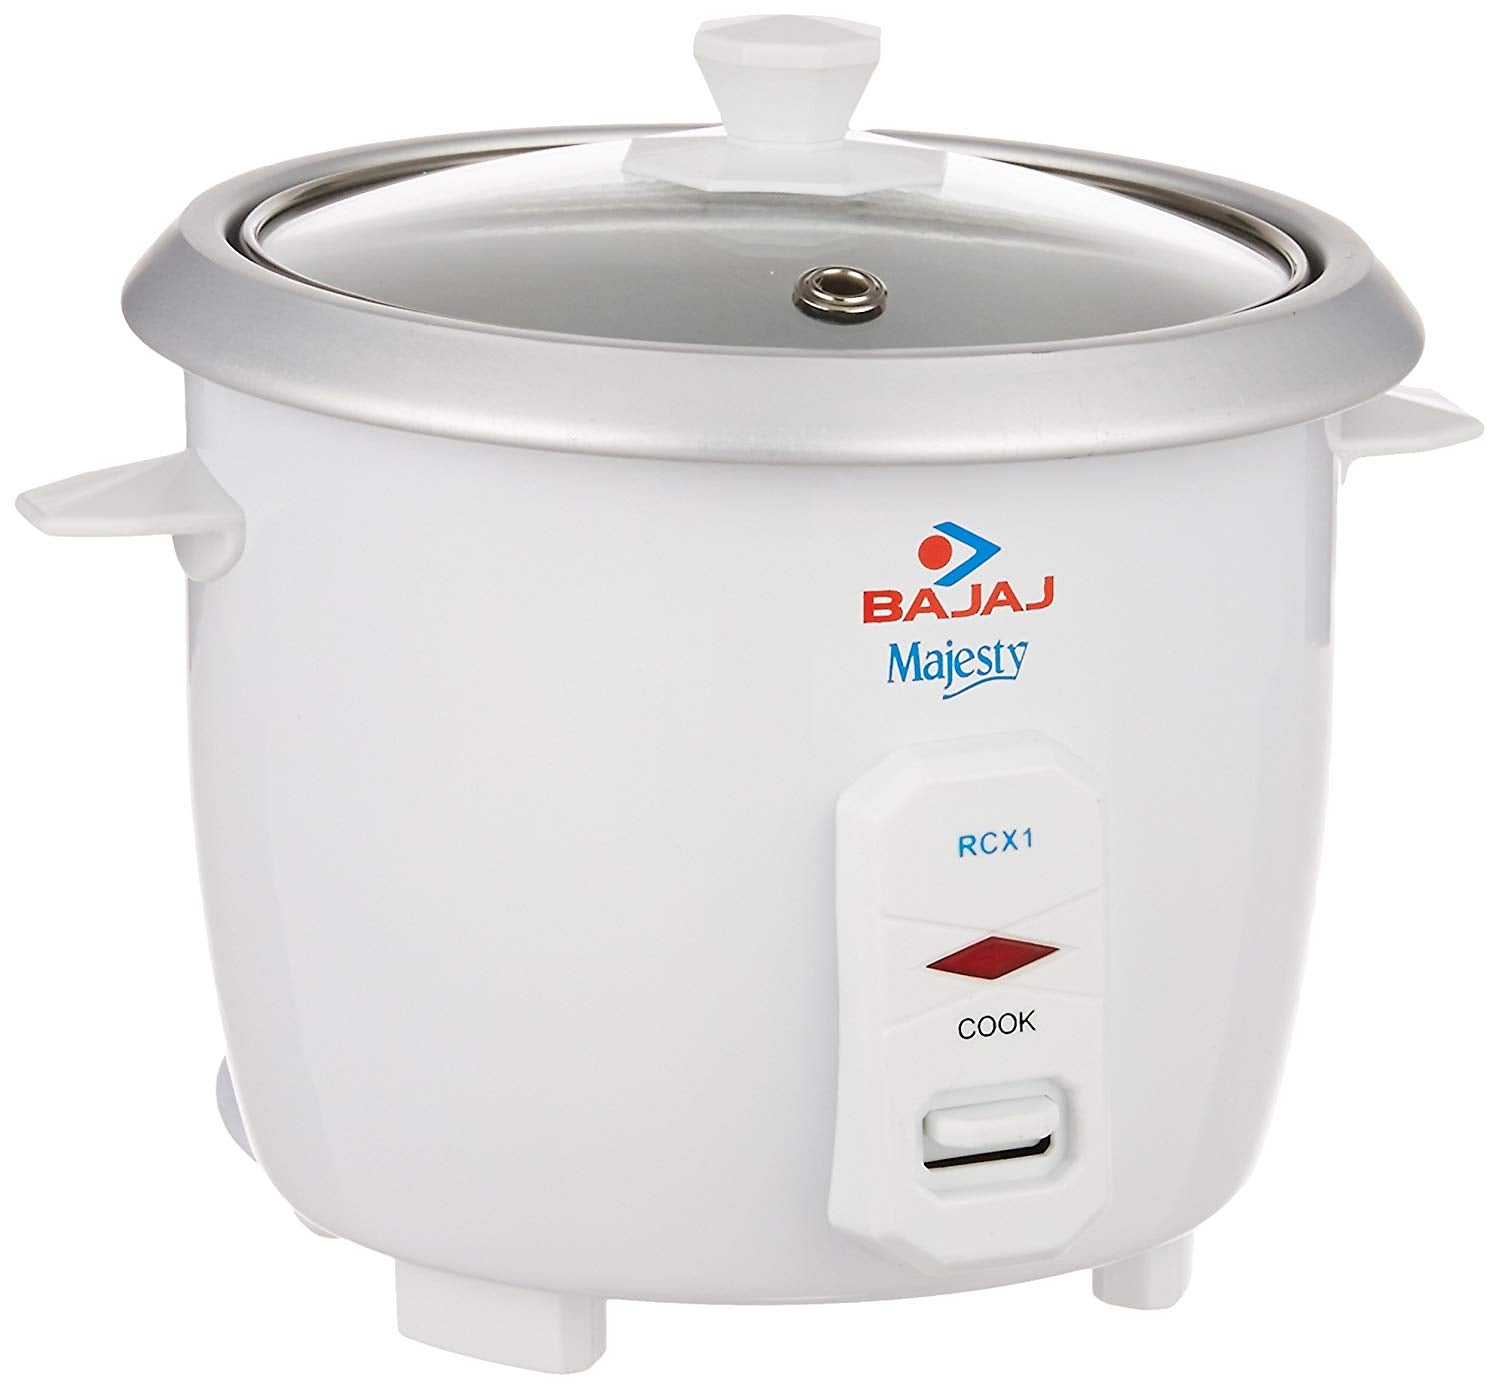 Bajaj Majesty RCX 1 Mini 0.4-Litre Multifunction Rice Cooker Whiteget best offers deals free and coupons online at buythevalue.in